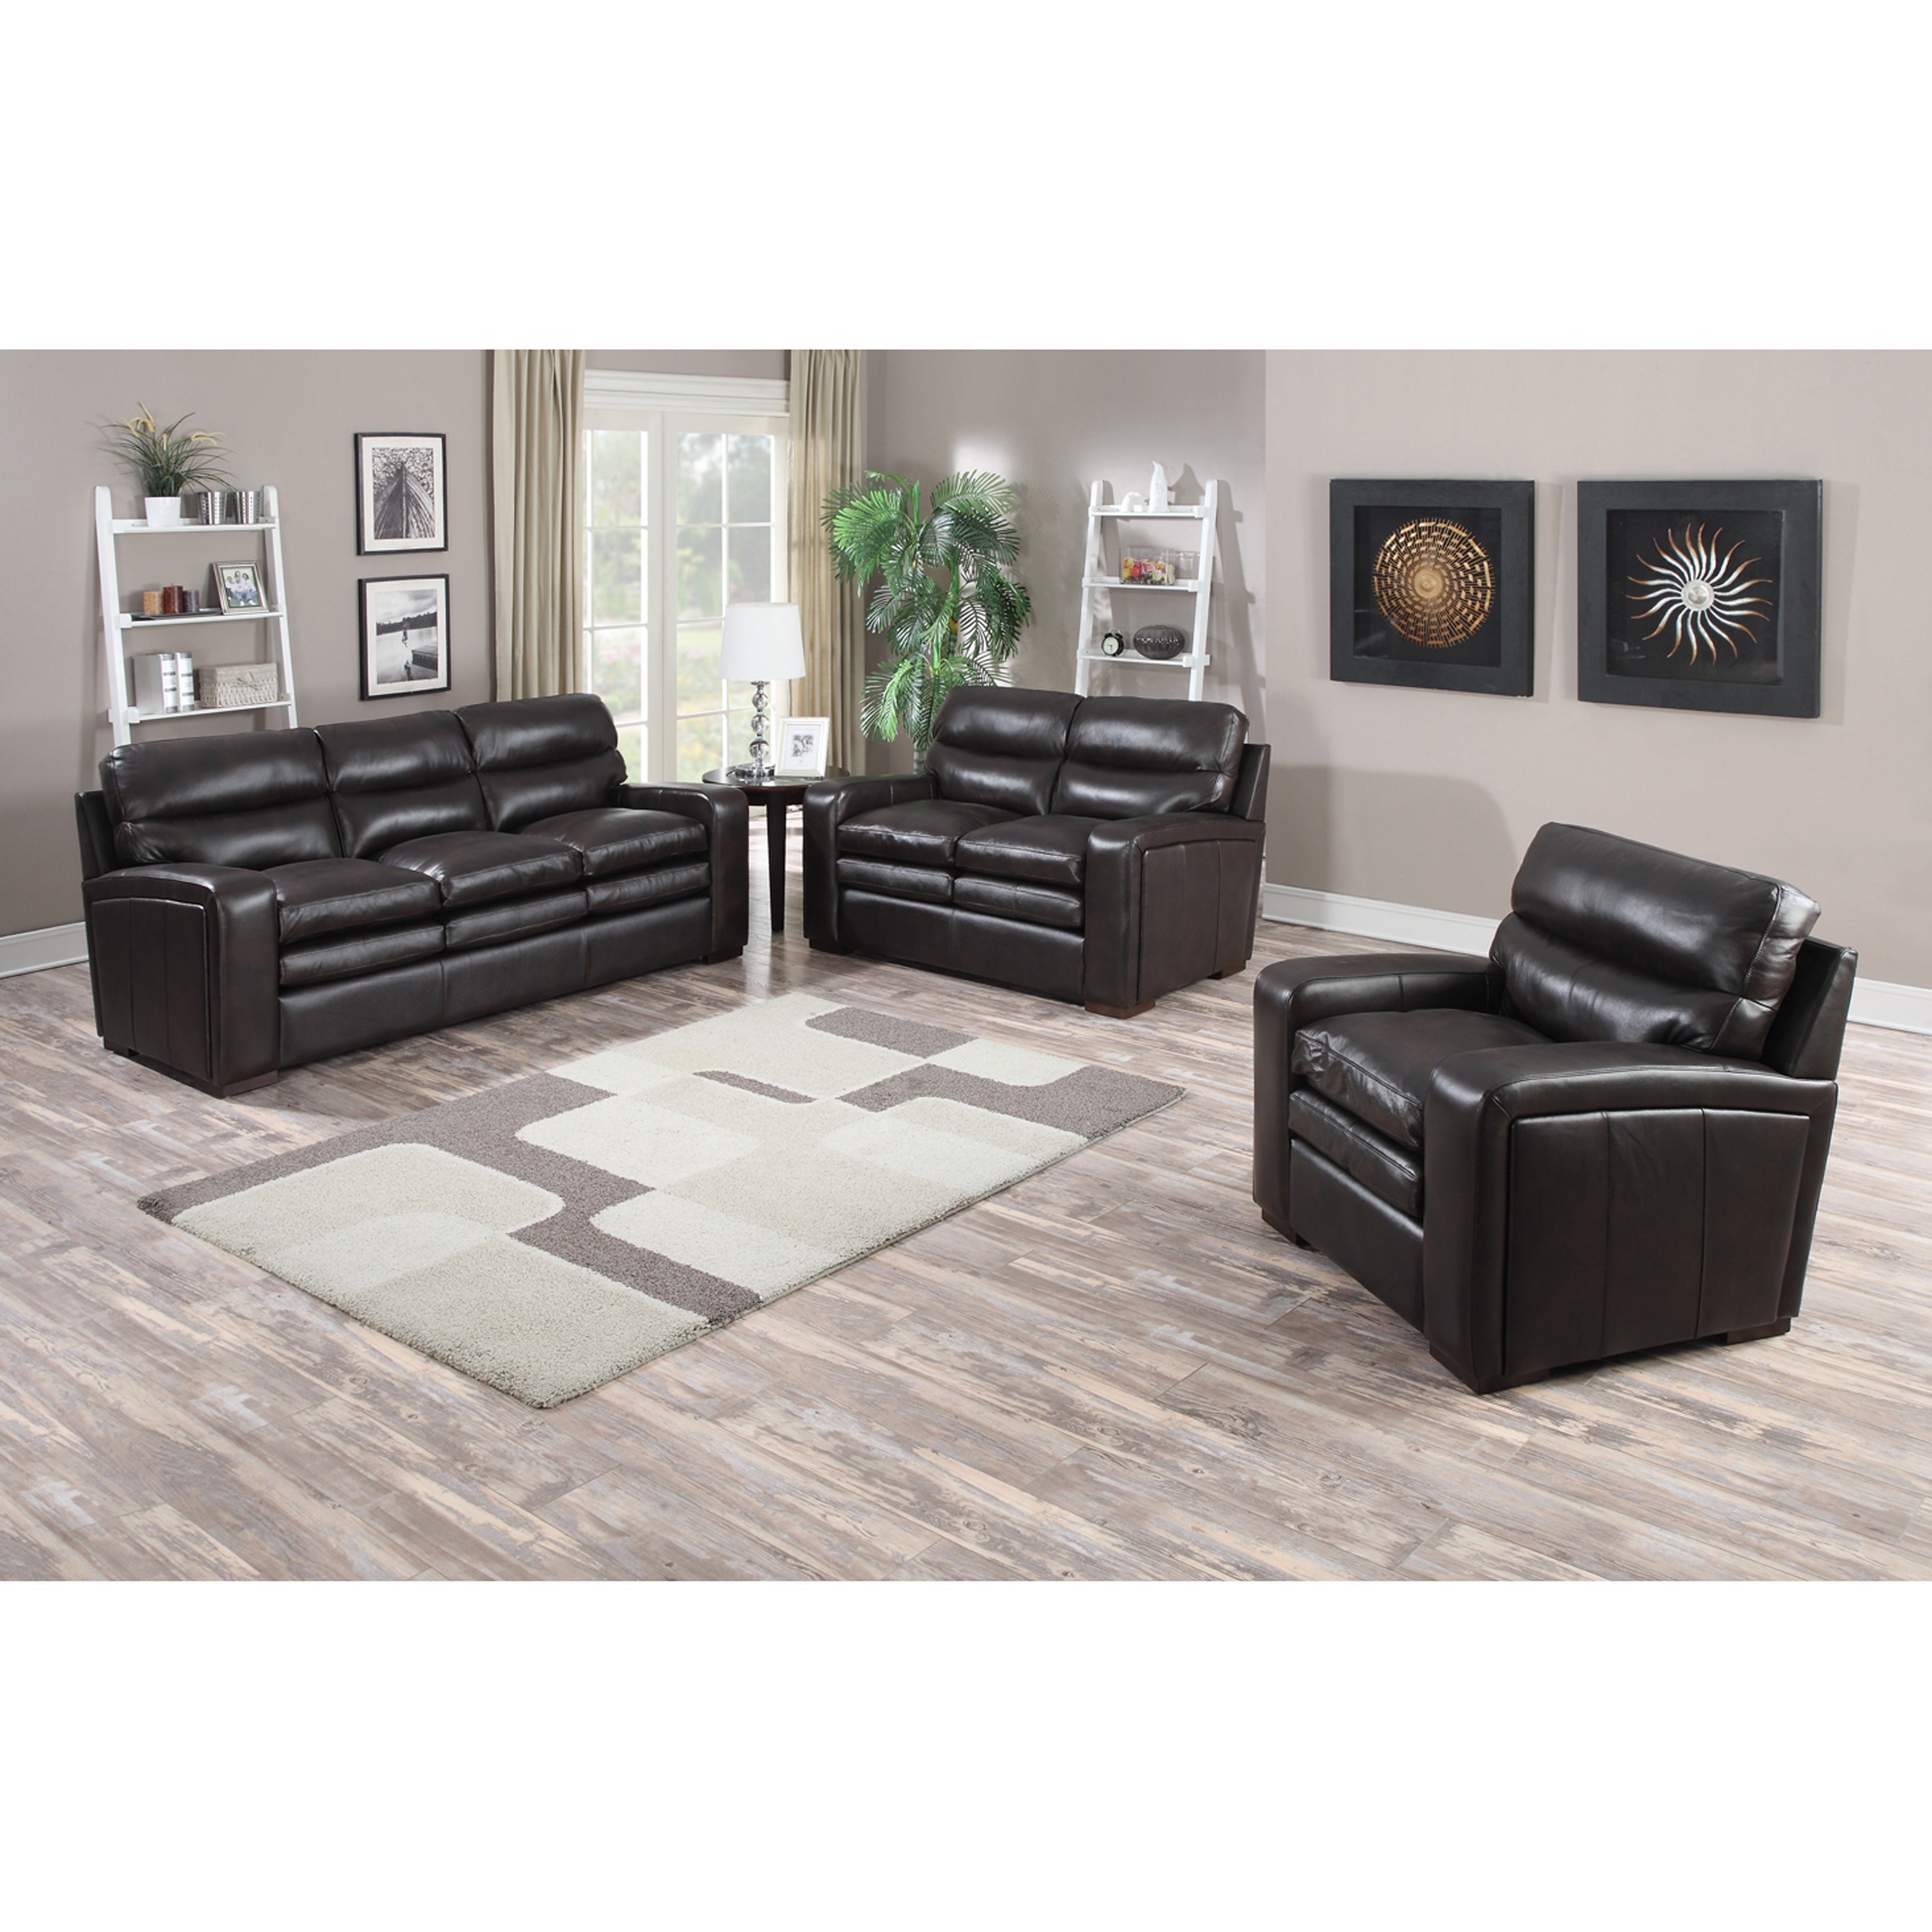 Shop Mercer Dark Brown Italian Leather Sofa, Loveseat And Chair Pertaining To Mercer Foam Oversized Sofa Chairs (View 13 of 25)